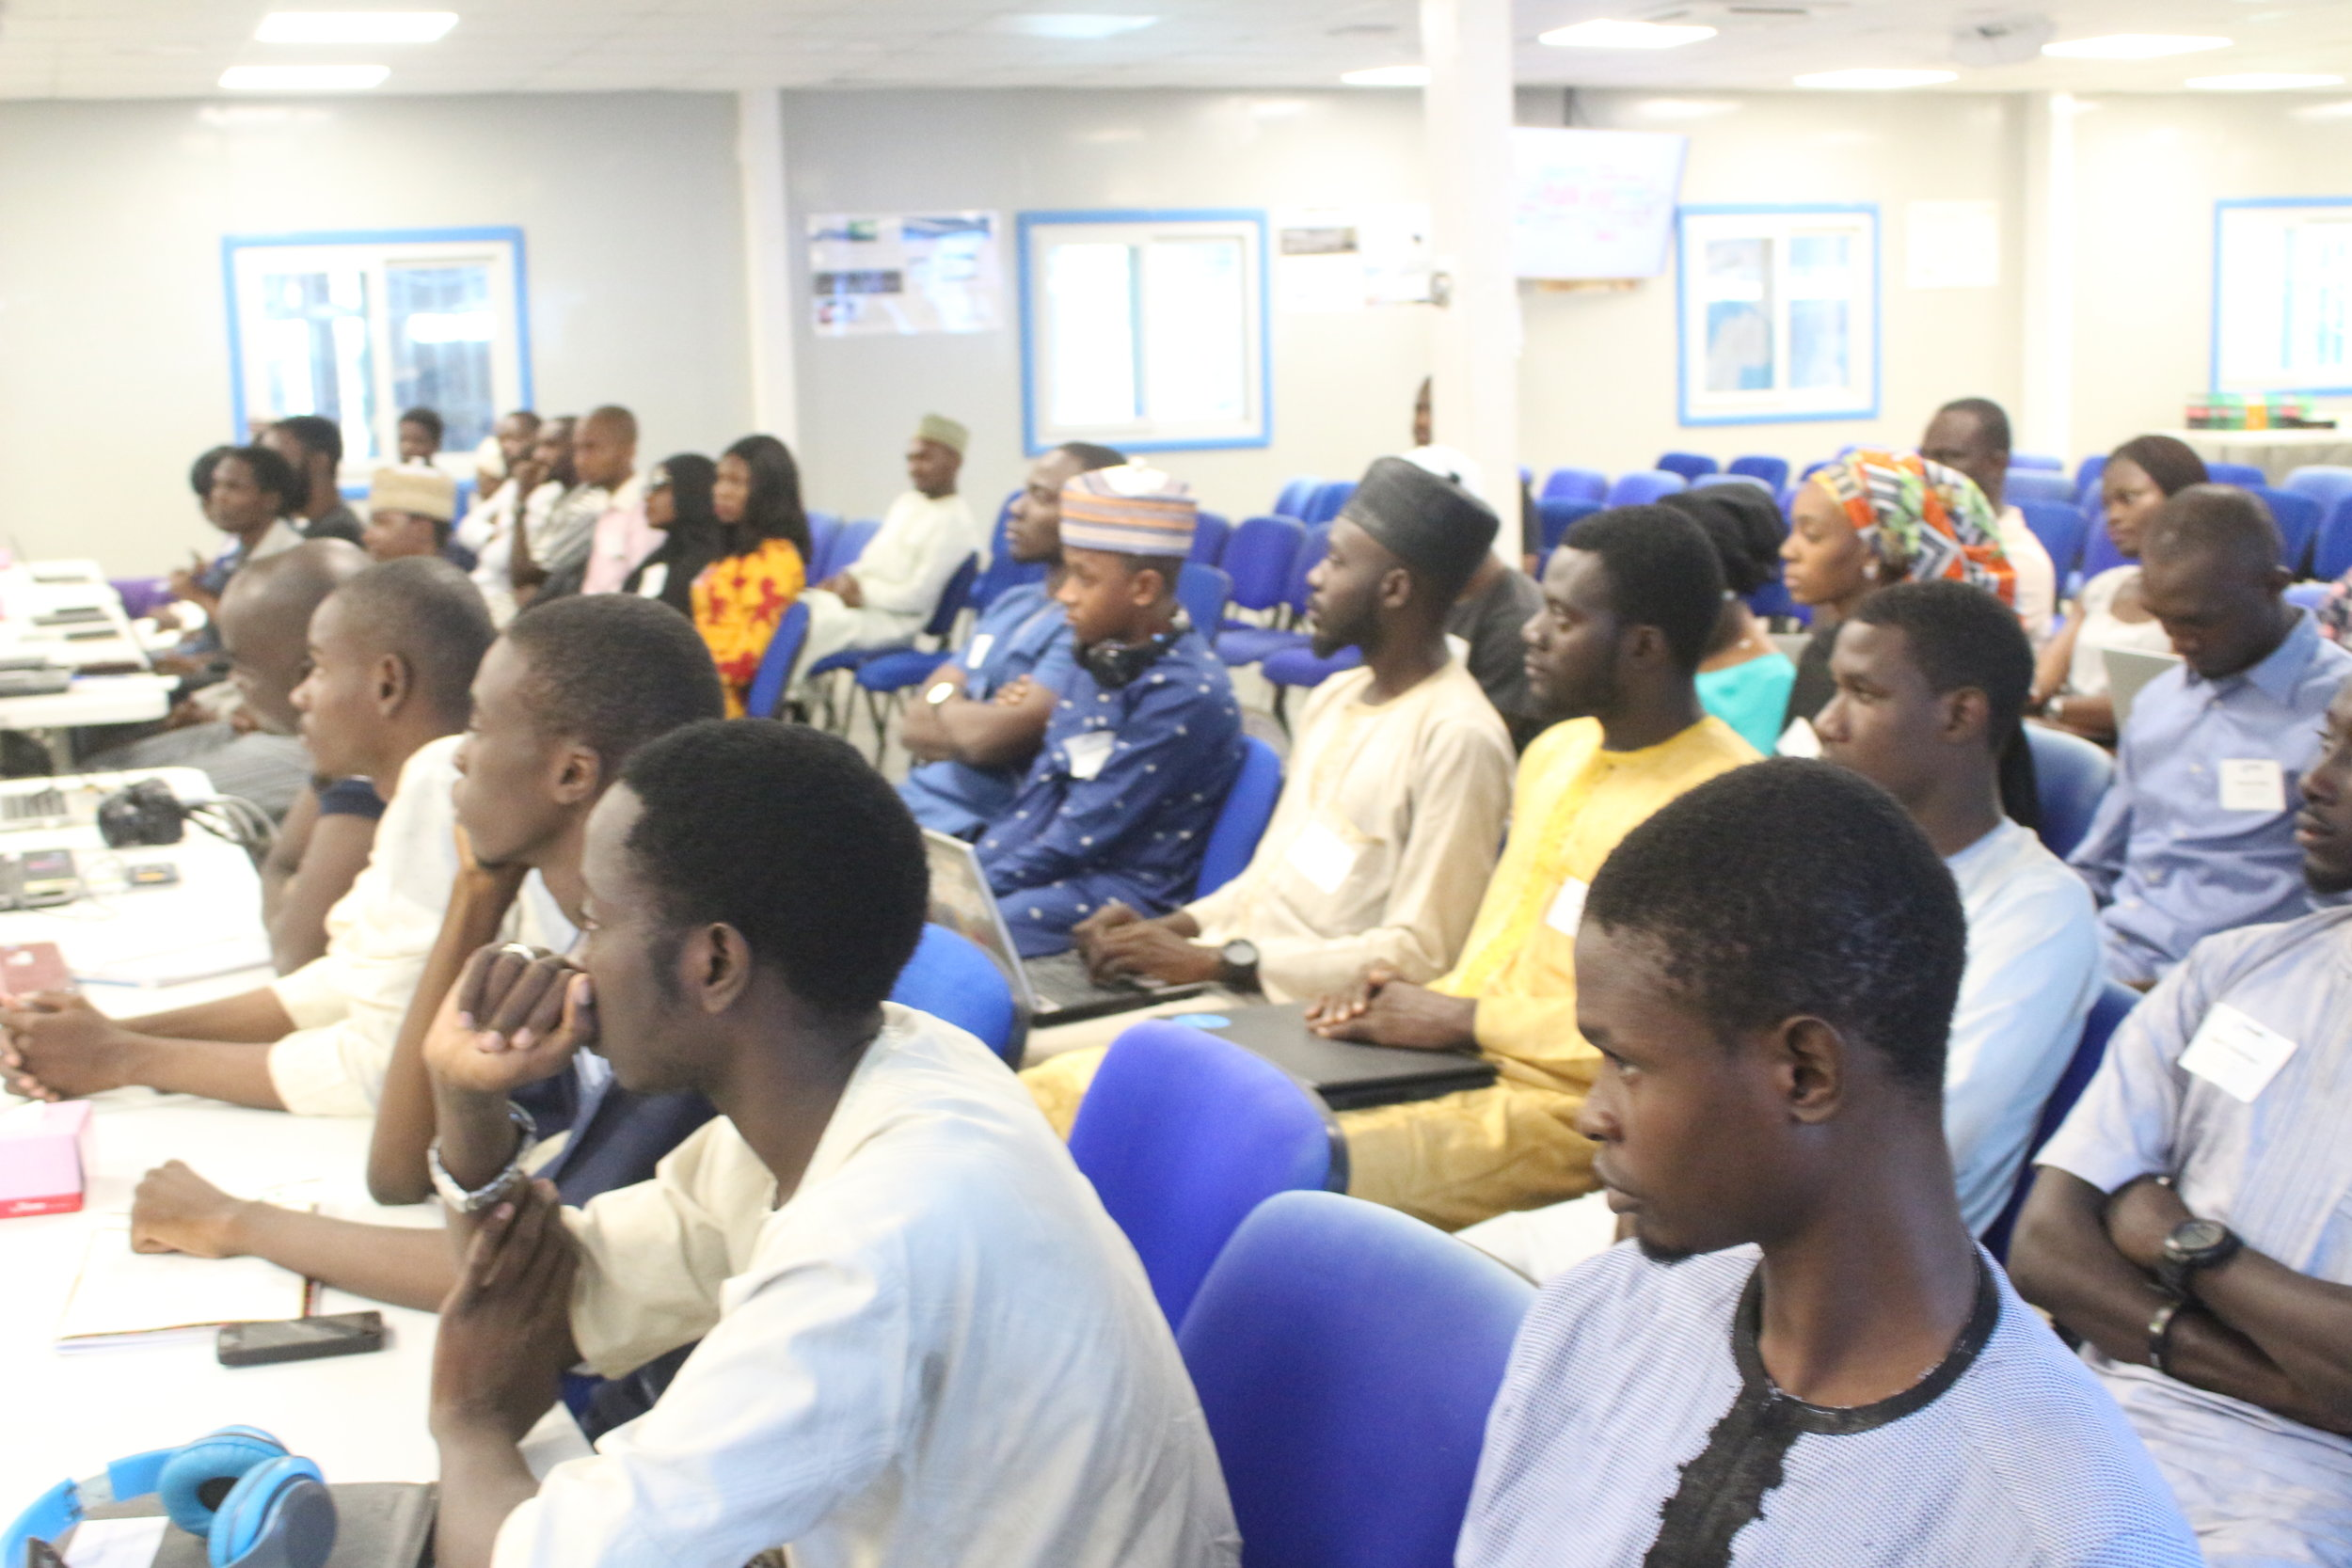 Over 40 participants from Bayero University, Kano State University and other parts of Kano State attended the meetup